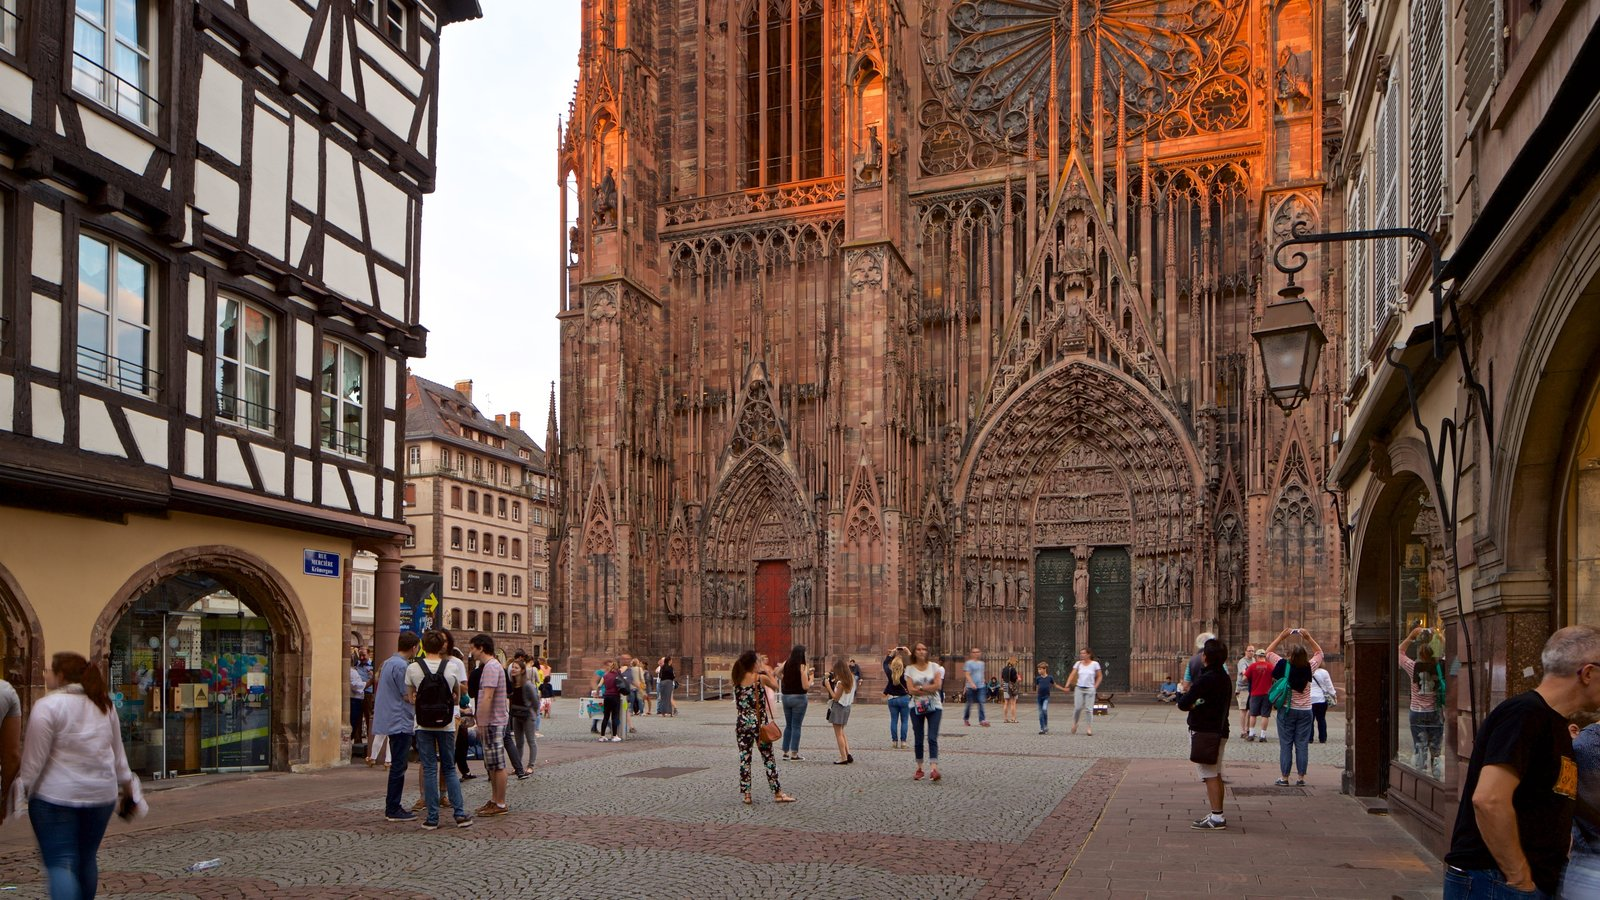 Our Lady of Strasbourg Cathedral featuring a church or cathedral, street scenes and heritage architecture